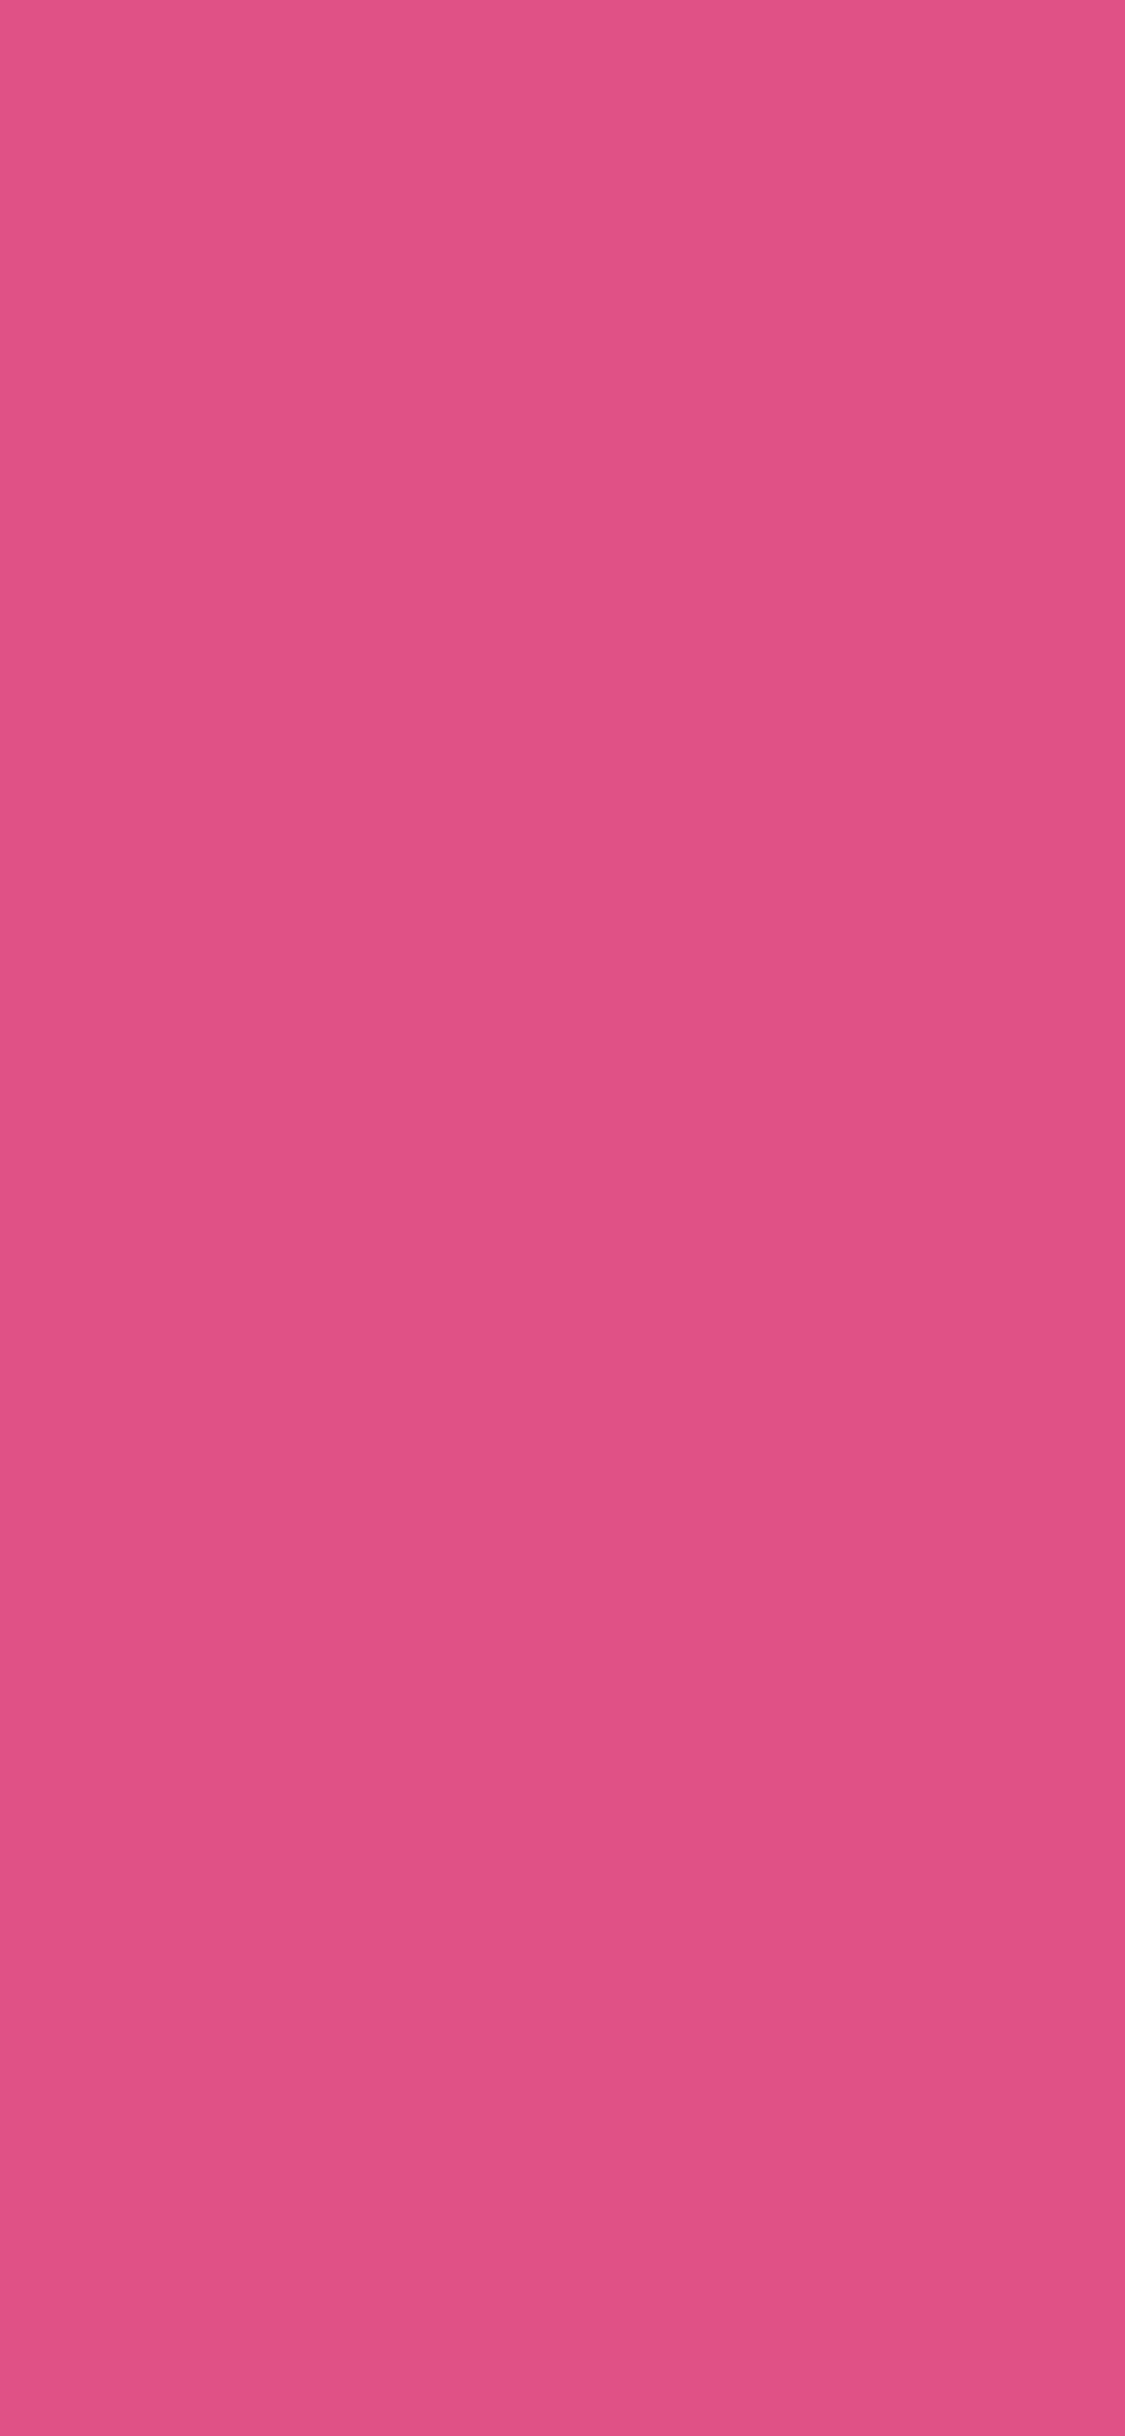 1125x2436 Fandango Pink Solid Color Background